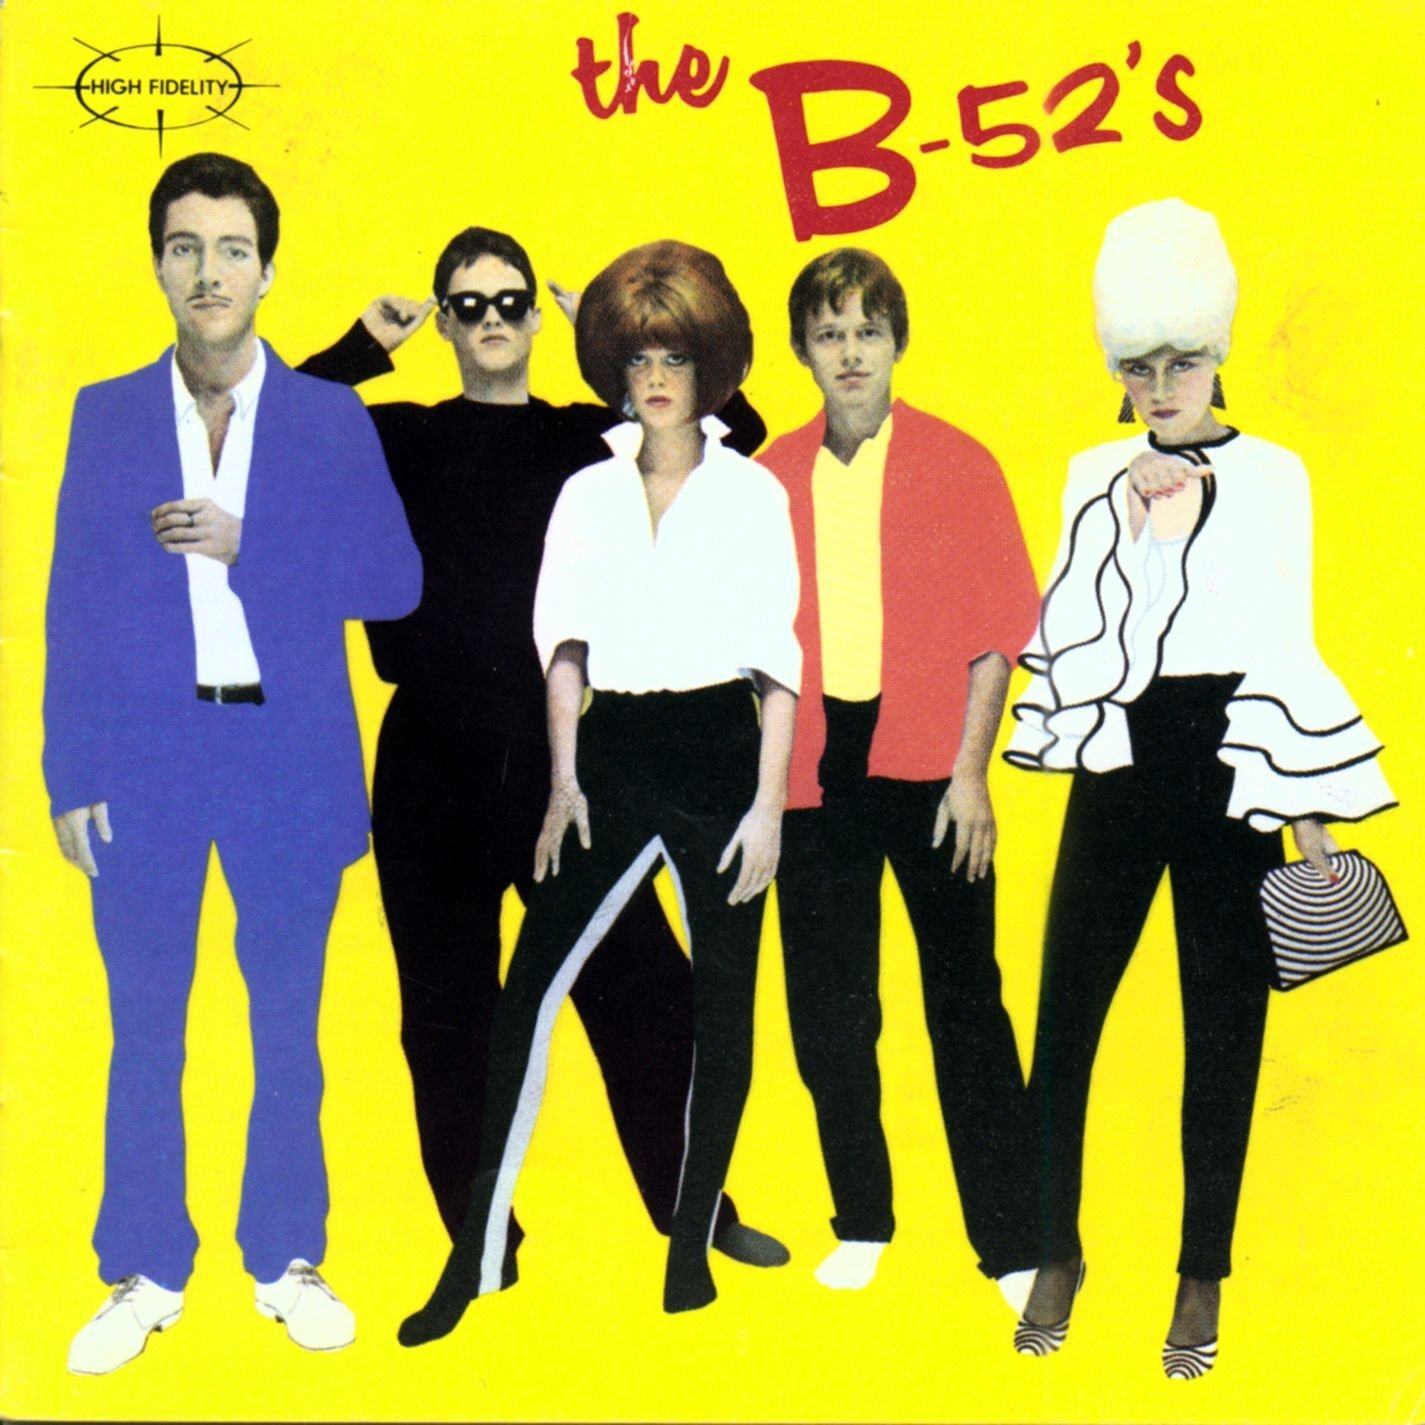 The B-52's Booking